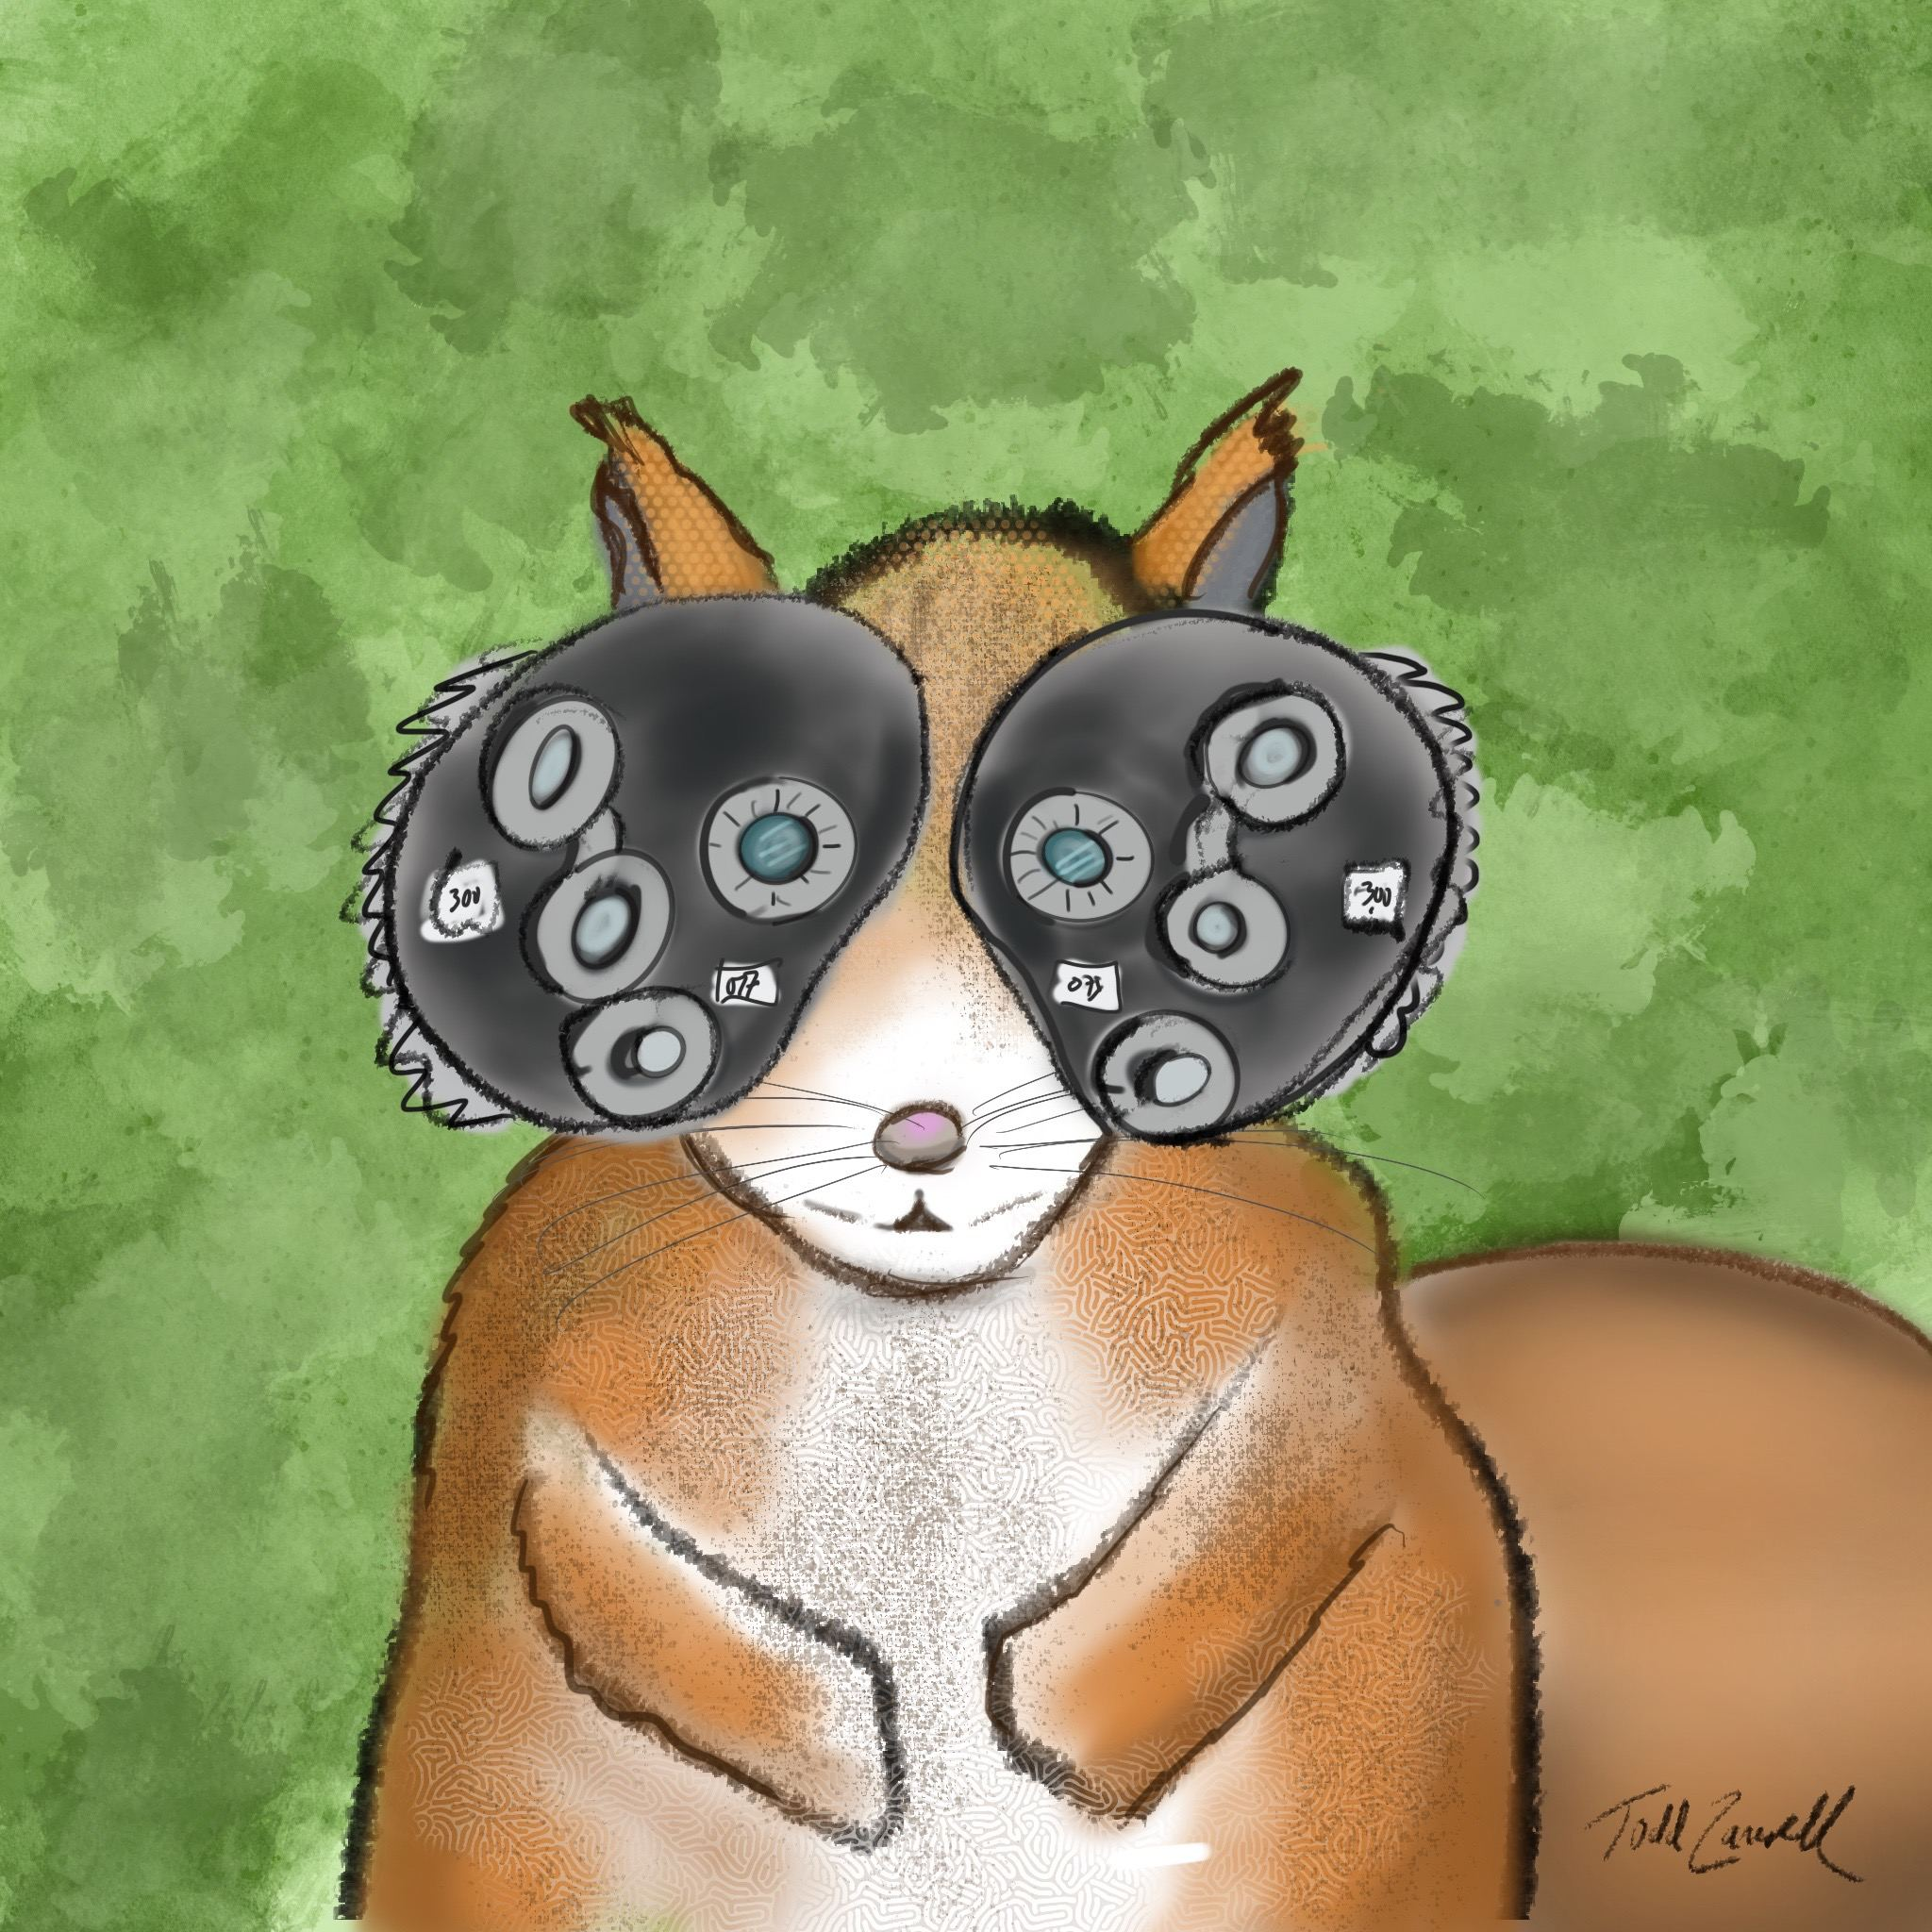 Squirrel eye exam